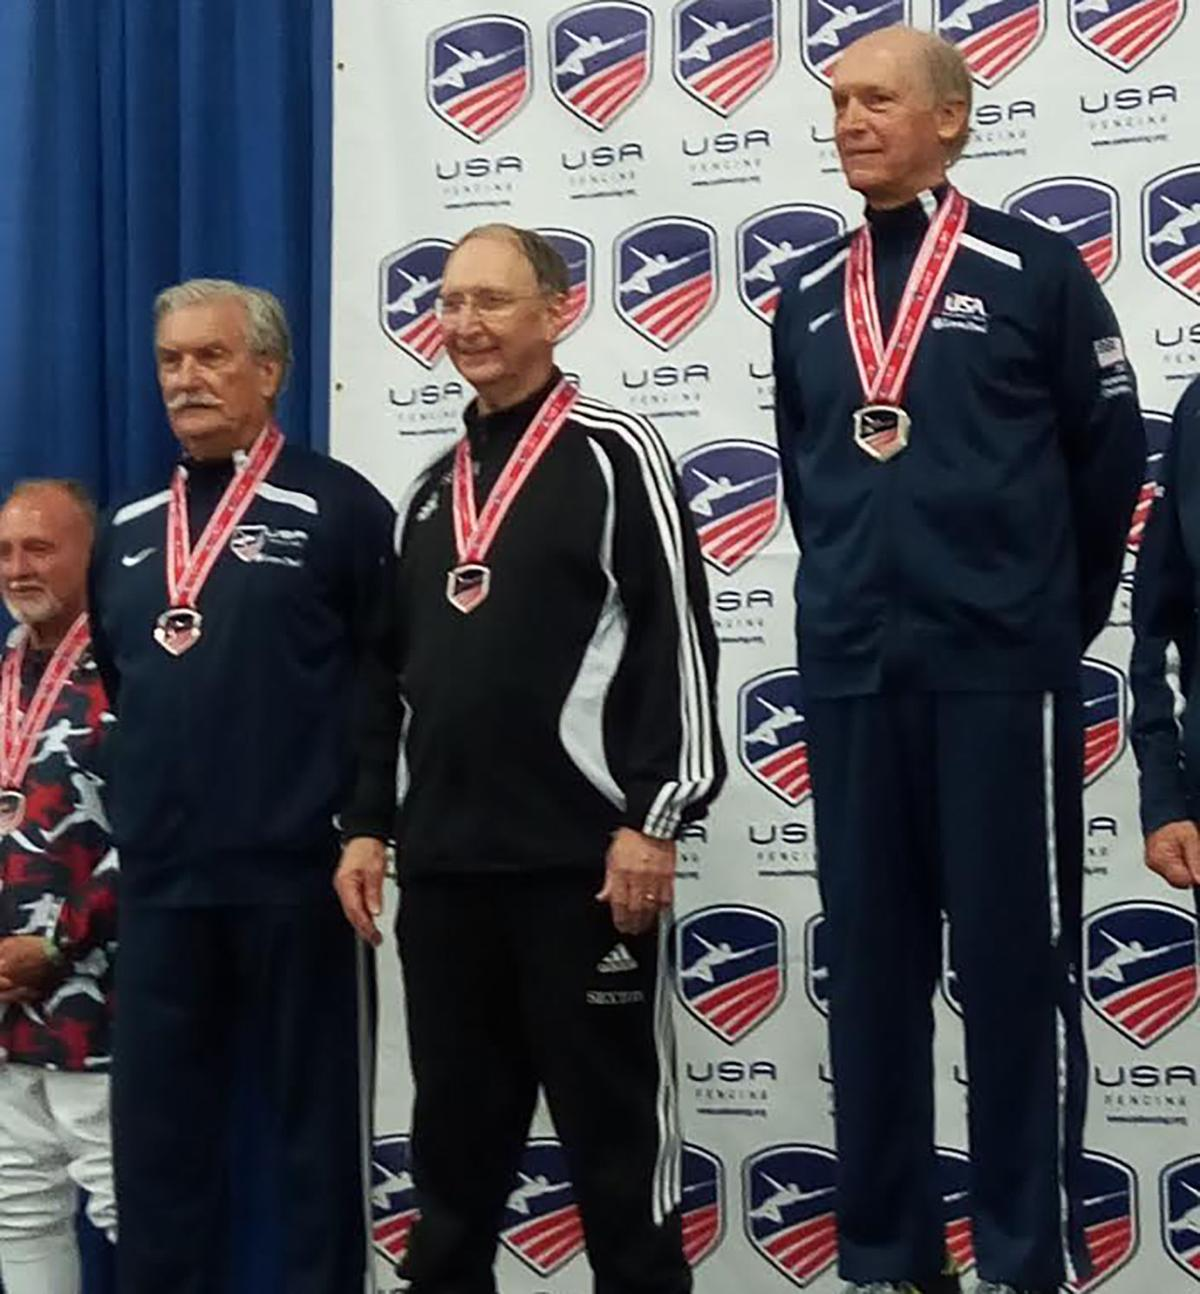 Local man places third at U.S. Fencing National Championships